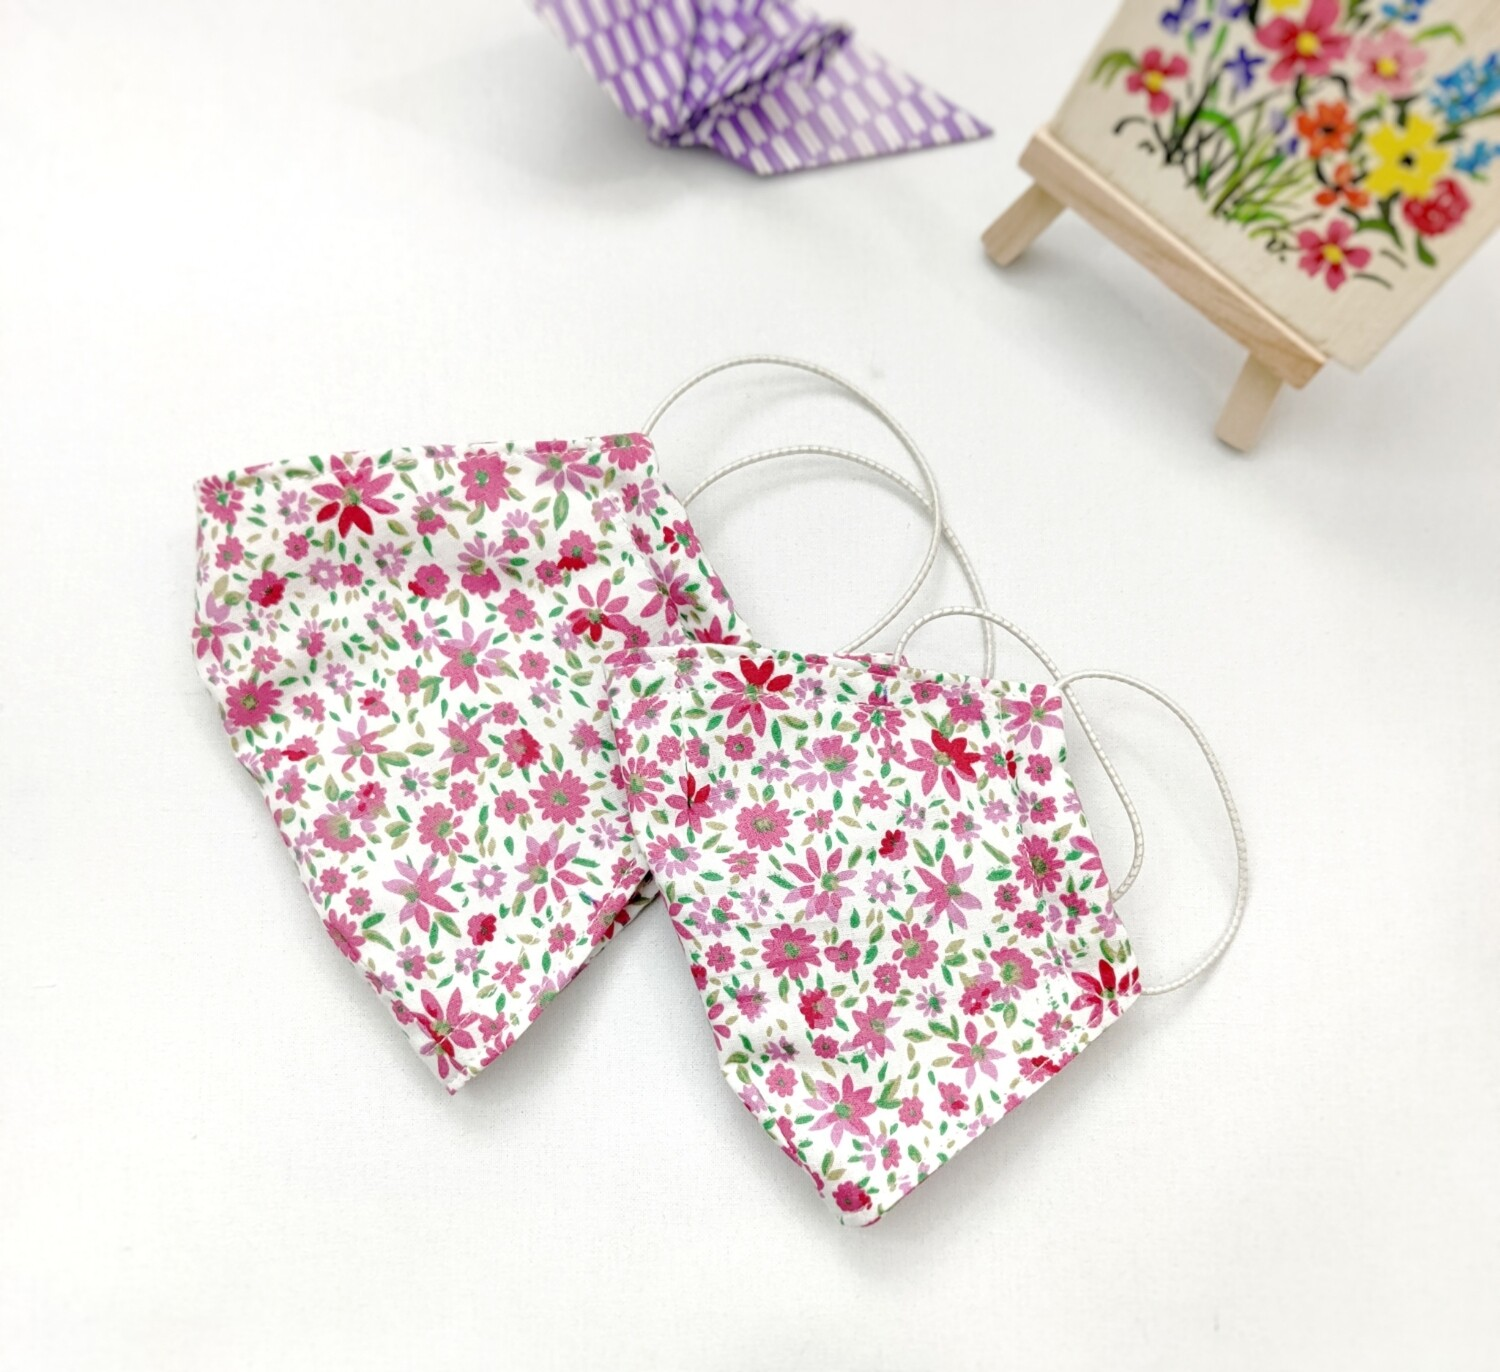 Couple  Cloth Mask With Filter Pocket for Mom and Daughter -  Handmade - Small Floral Print